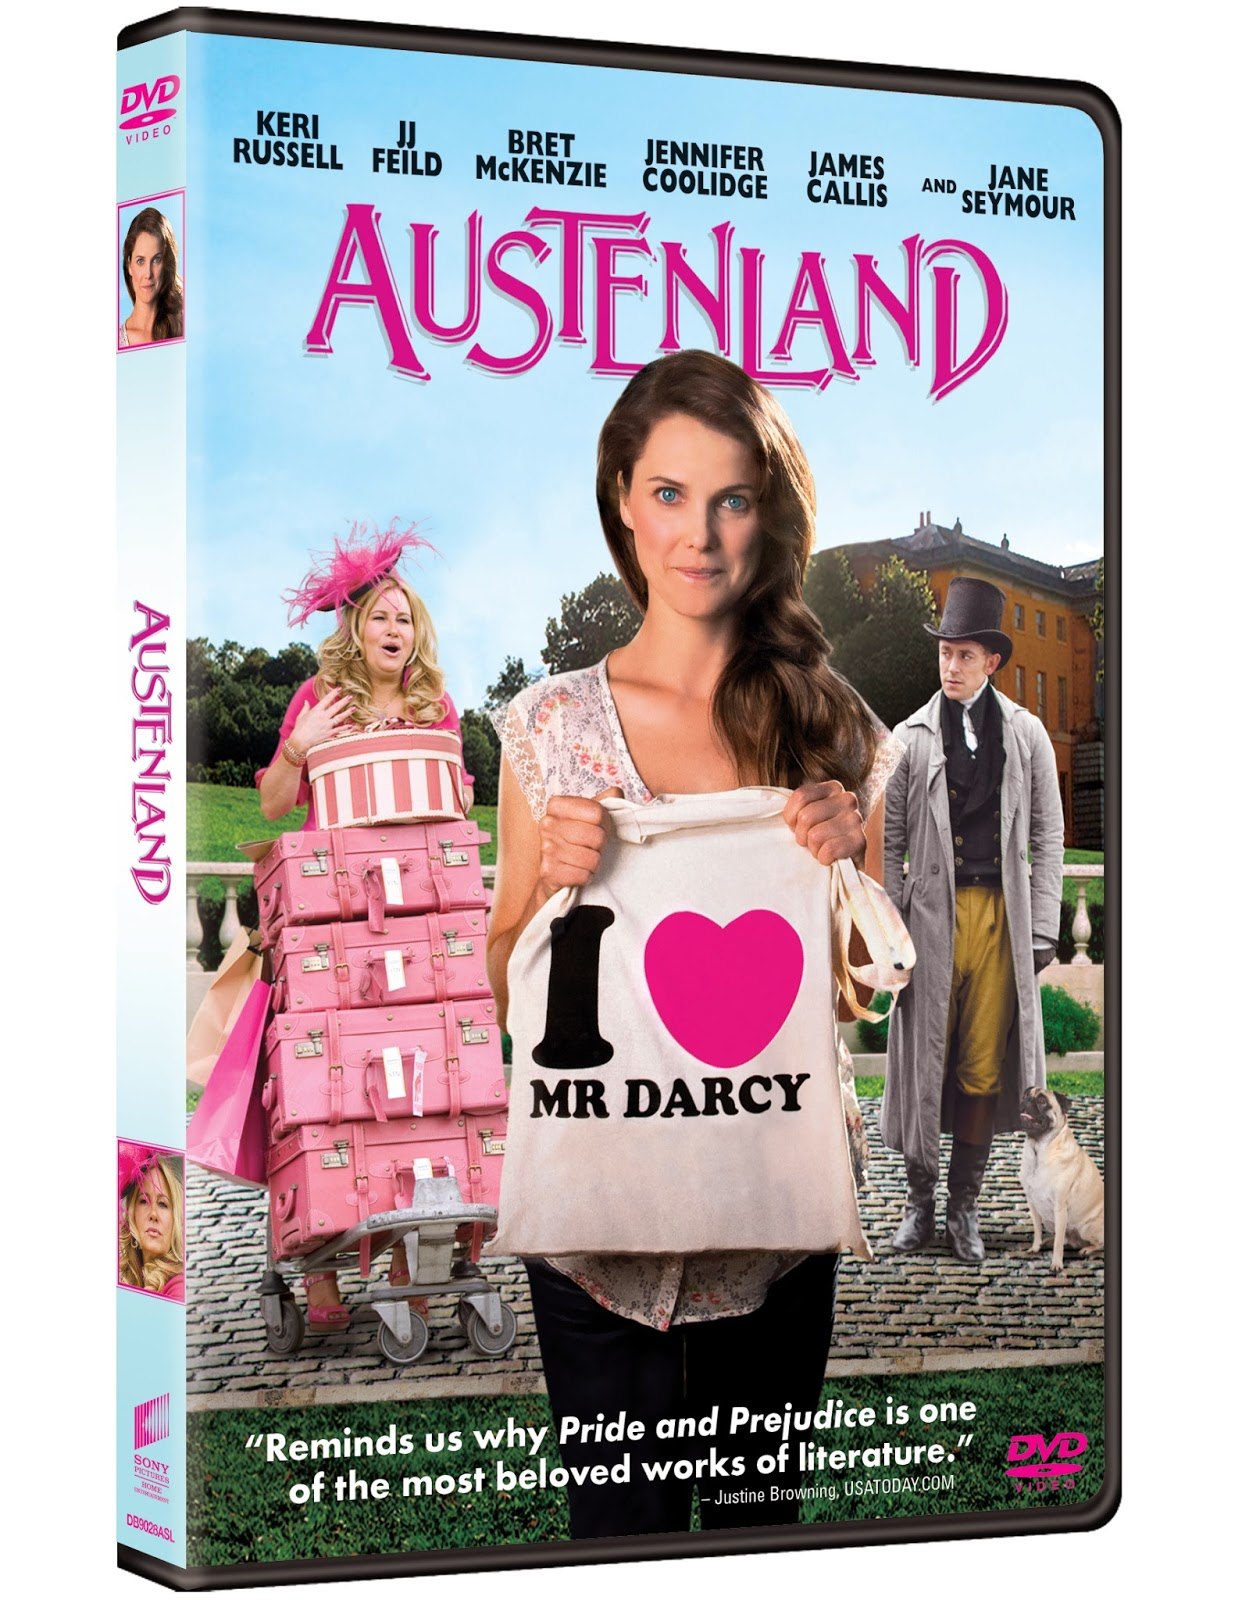 Austenland: DVD Review and Giveaway